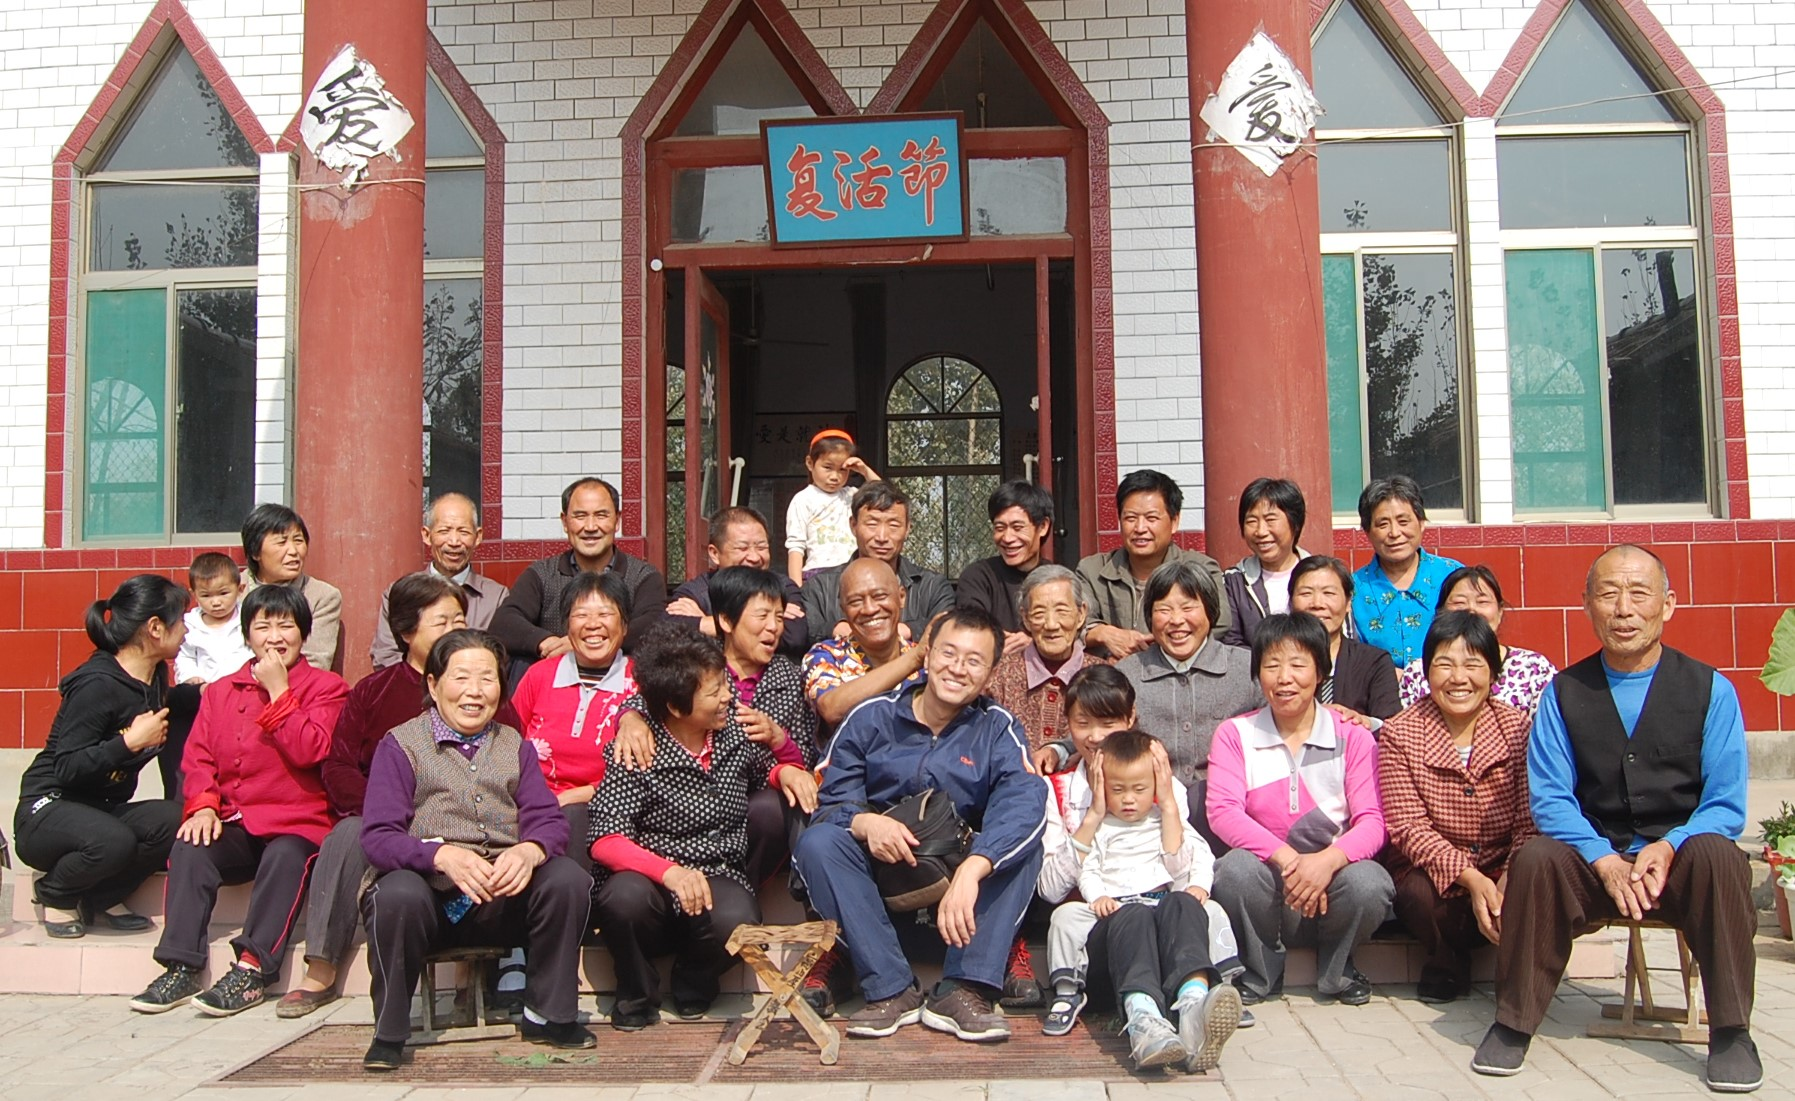 Chang Le Family Church